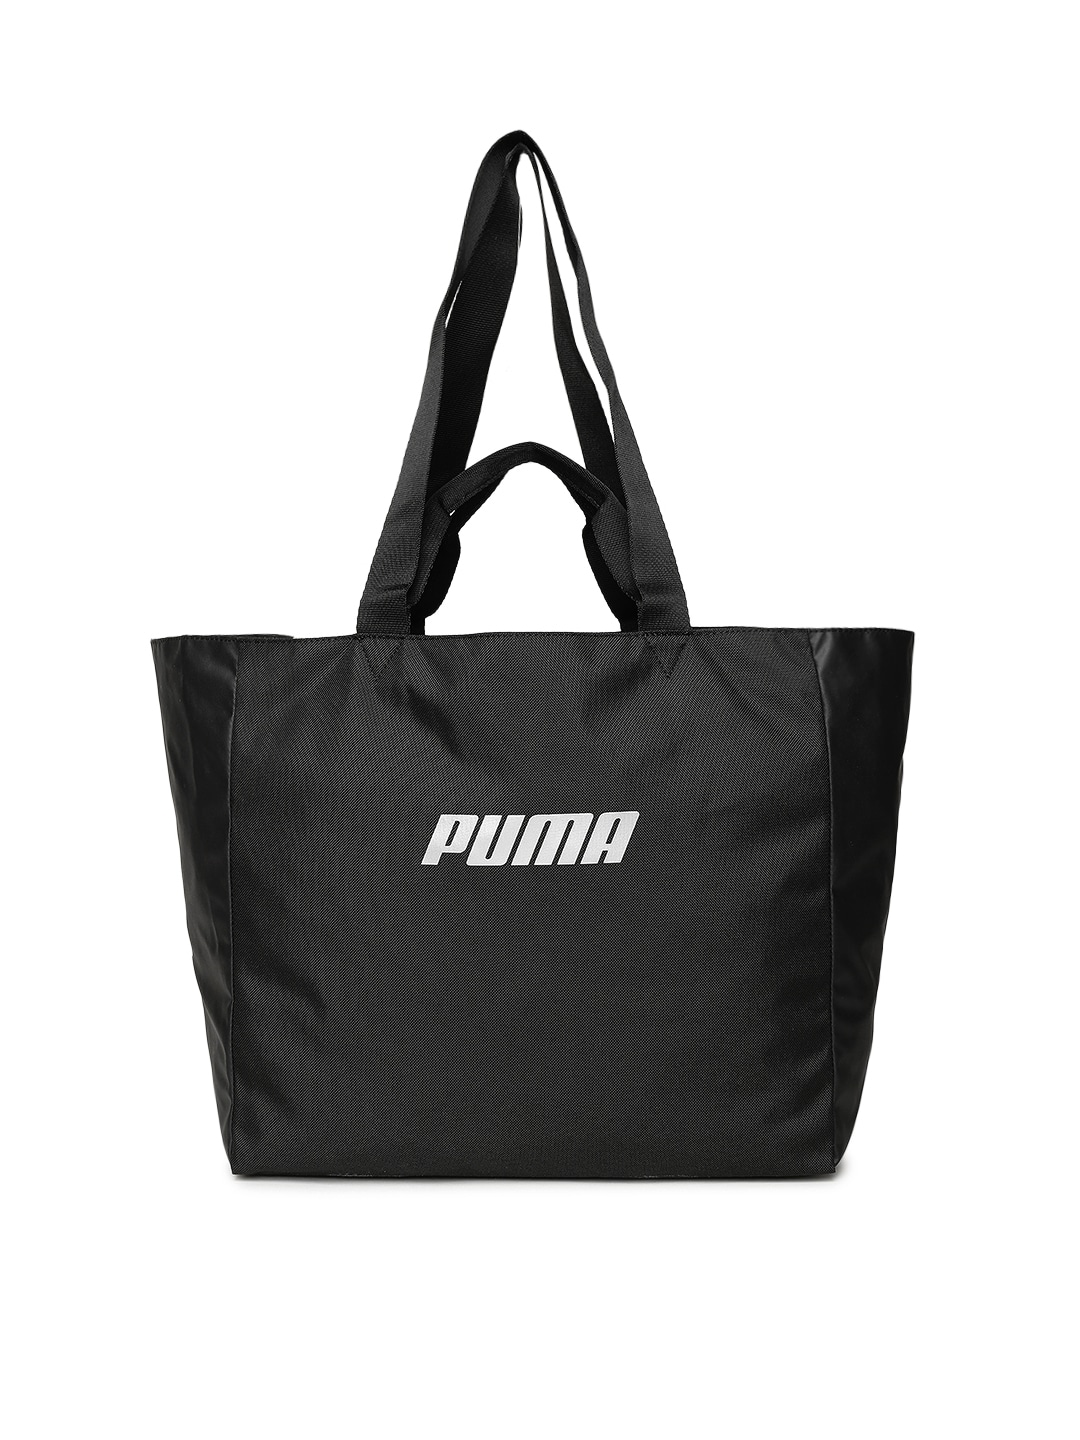 afb1020ec6 Puma Shoes Handbags - Buy Puma Shoes Handbags online in India